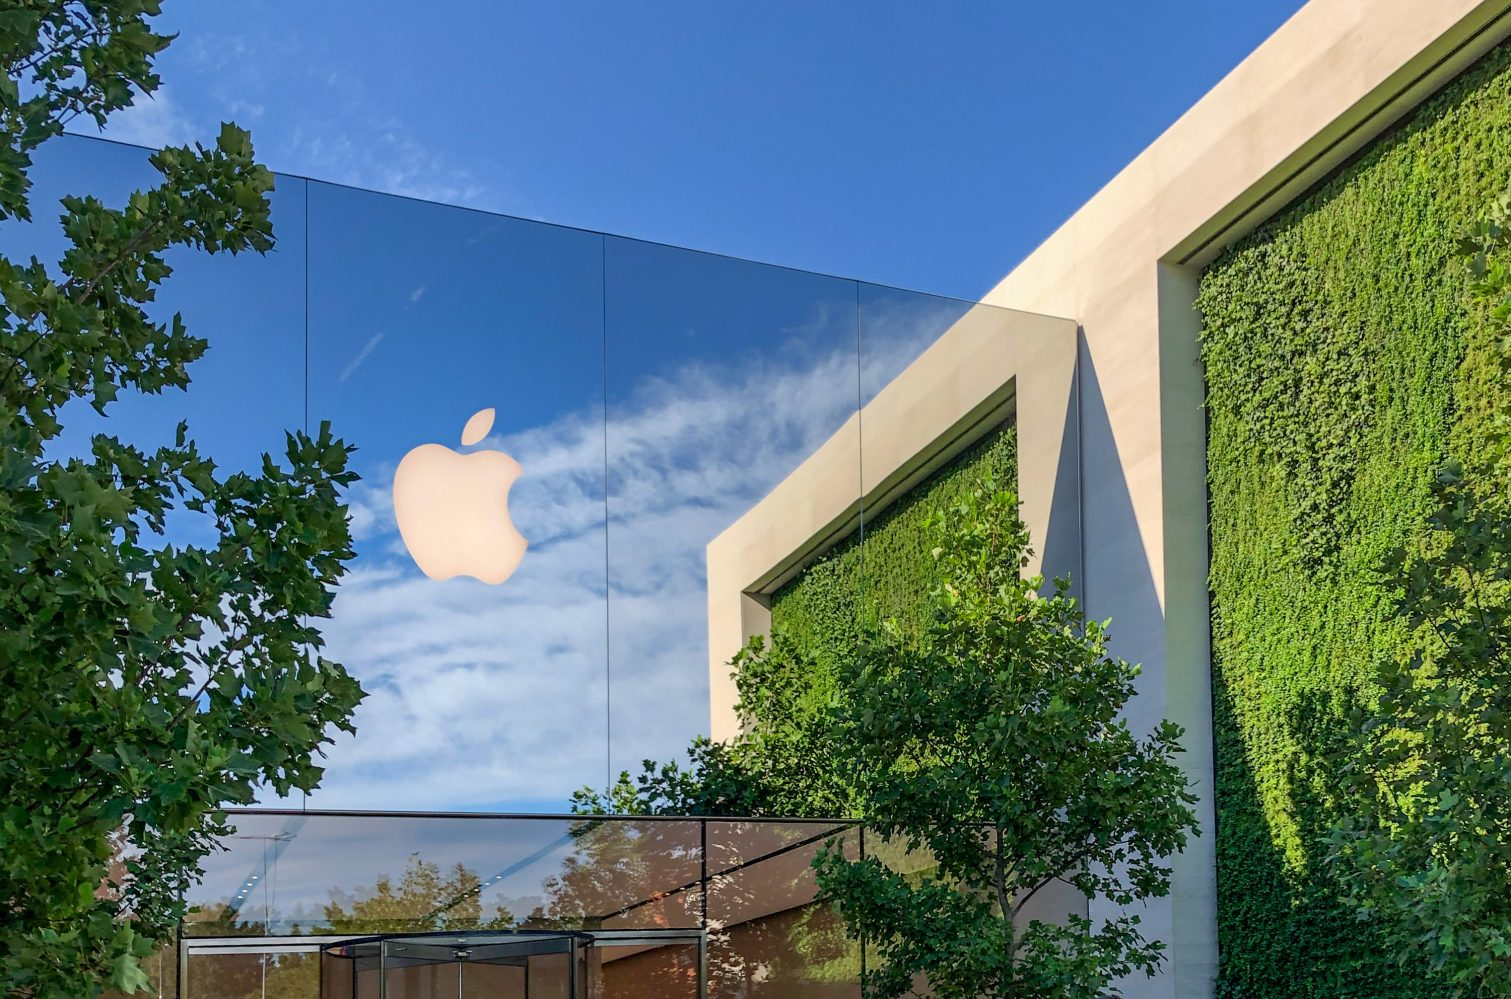 Report: Side effect of Apple's increasing garden walls is better hiding places for elite hackers